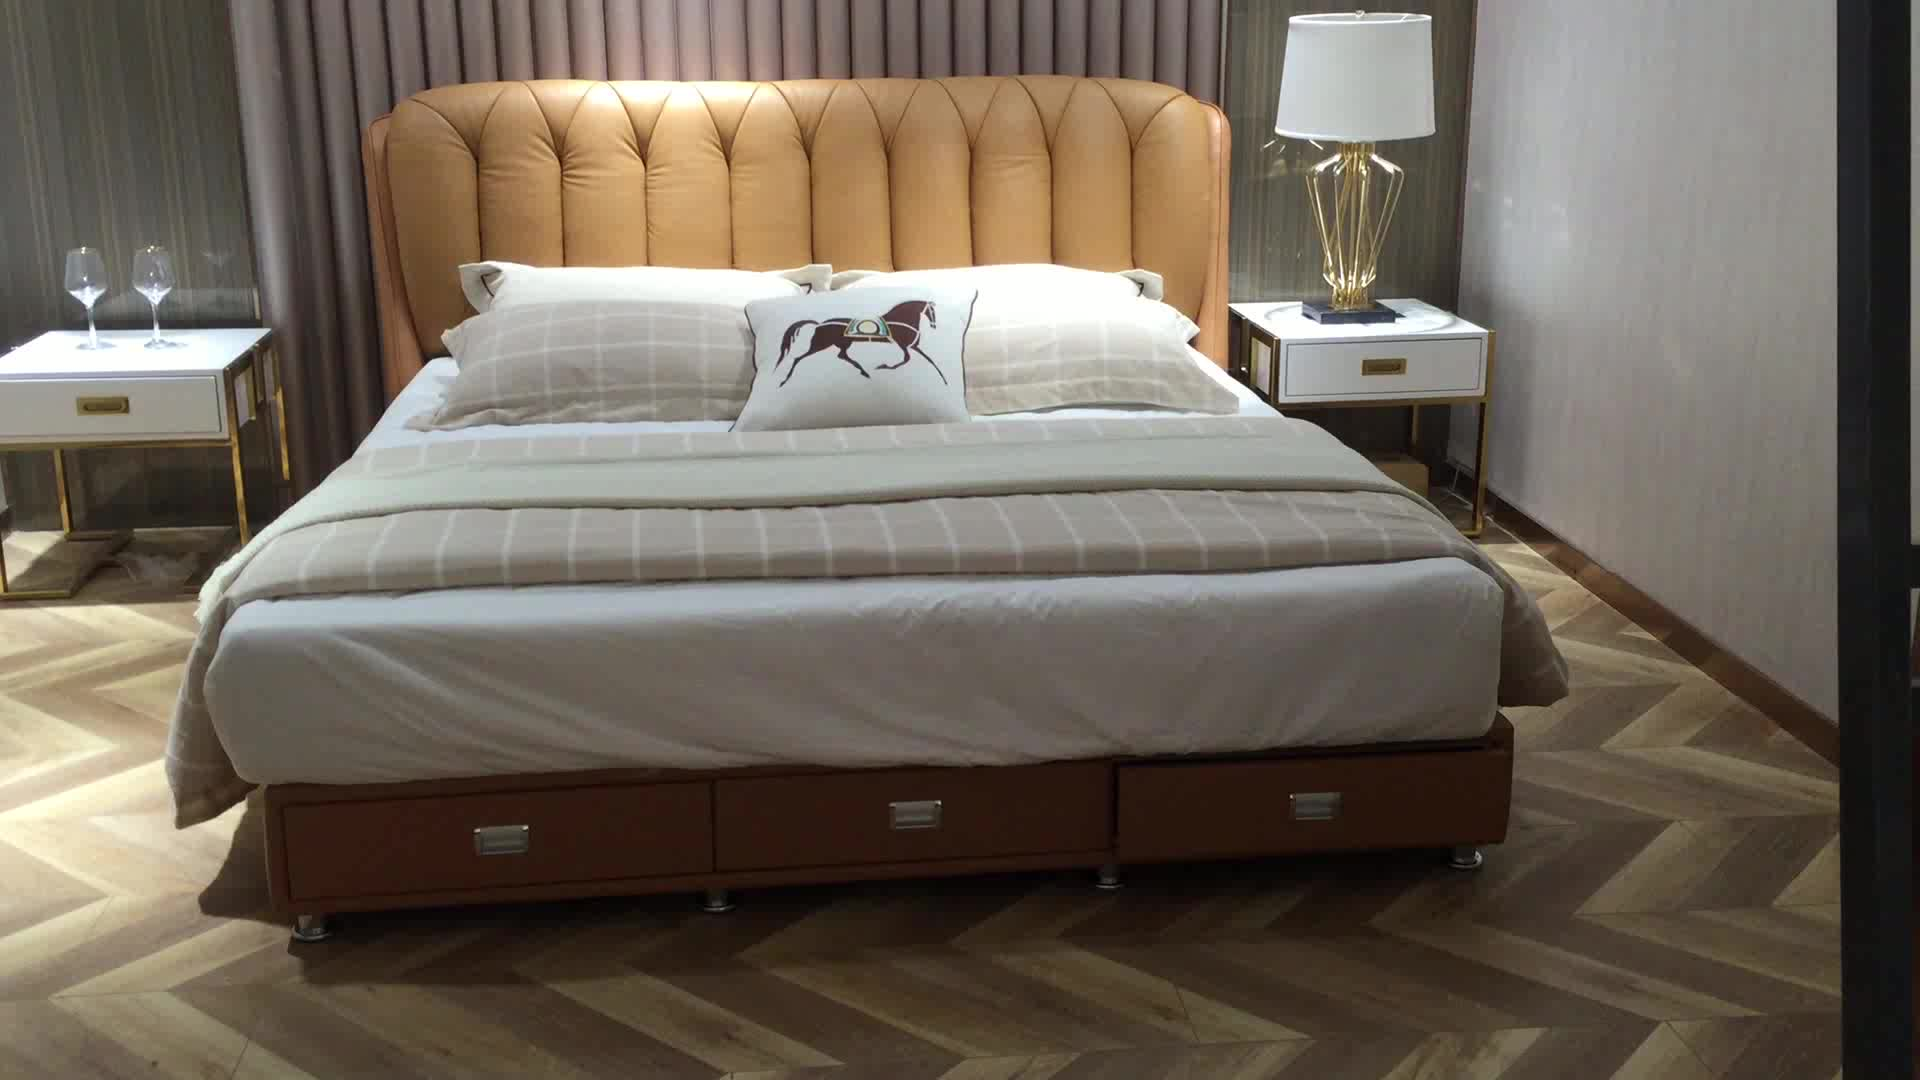 Leather Bed Frame Wholesale Furniture China Alibaba Furniture Leather Single Pink Red Leather Bed Frame View Bed Frame Leather Nondo Product Details From Chengdu